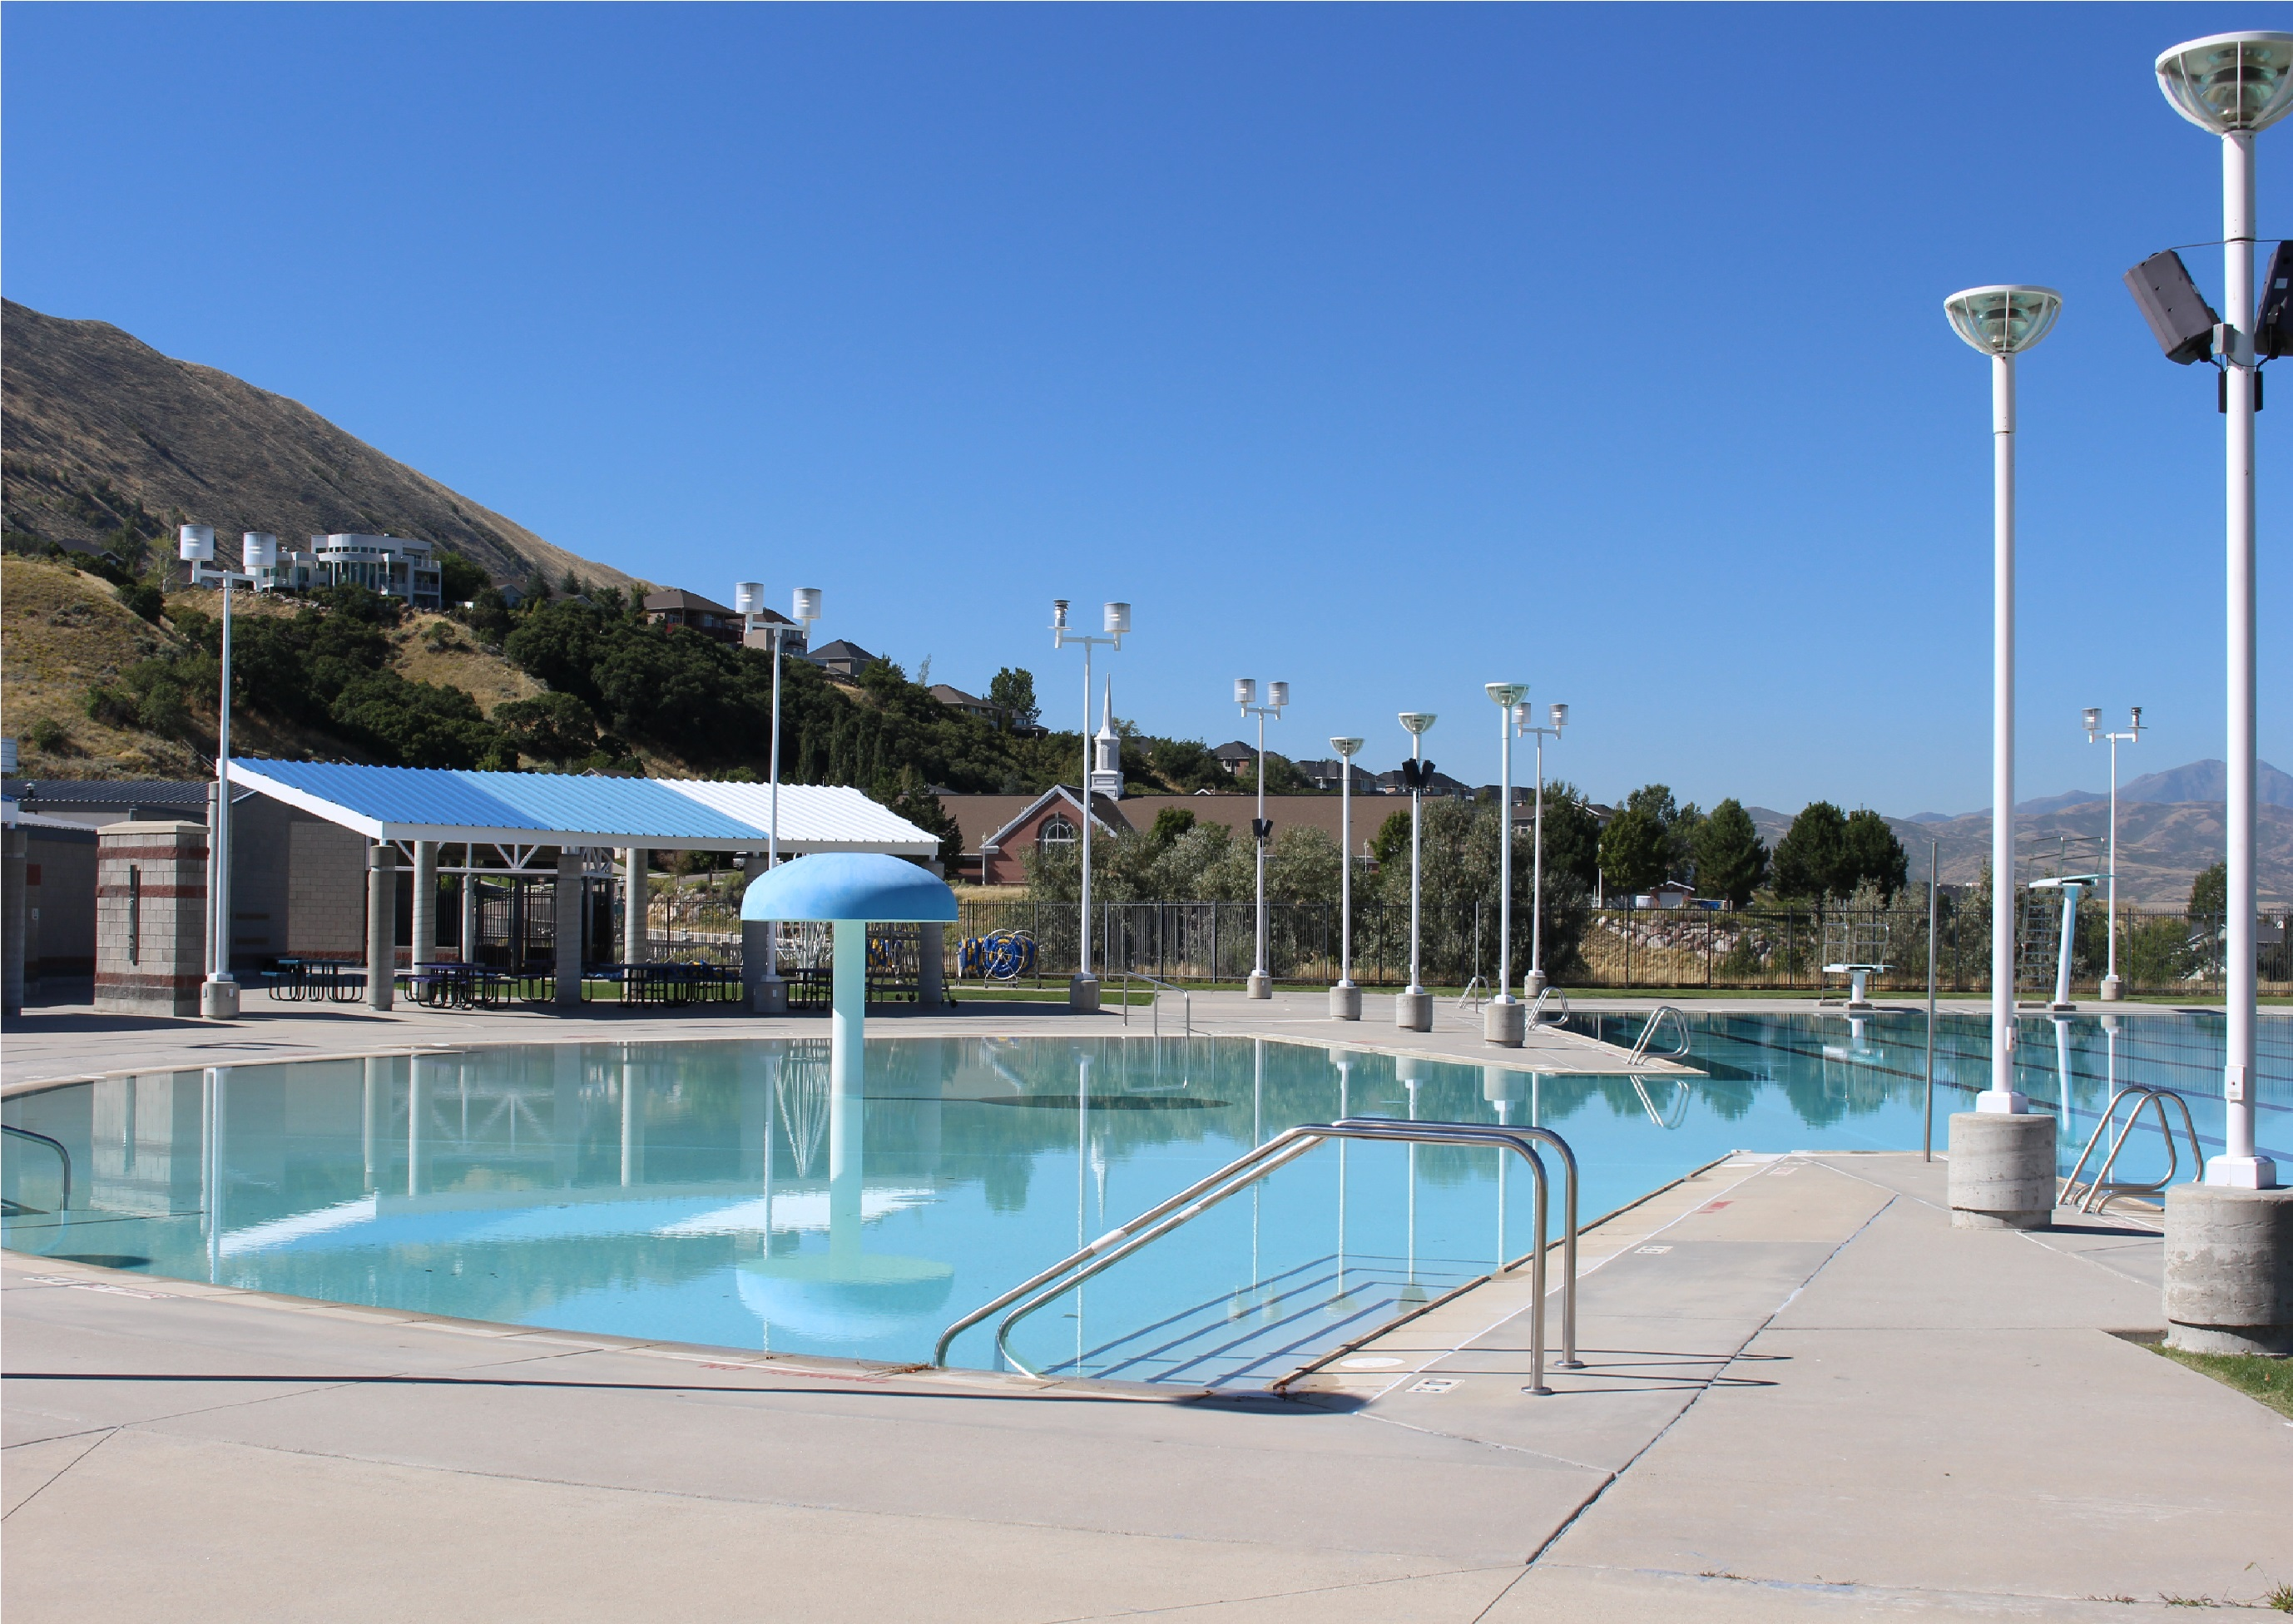 The Draper Outdoor Pool A Salt Lake County Facility It Is Beautiful On South Mountain With Great View Of Entire Valley